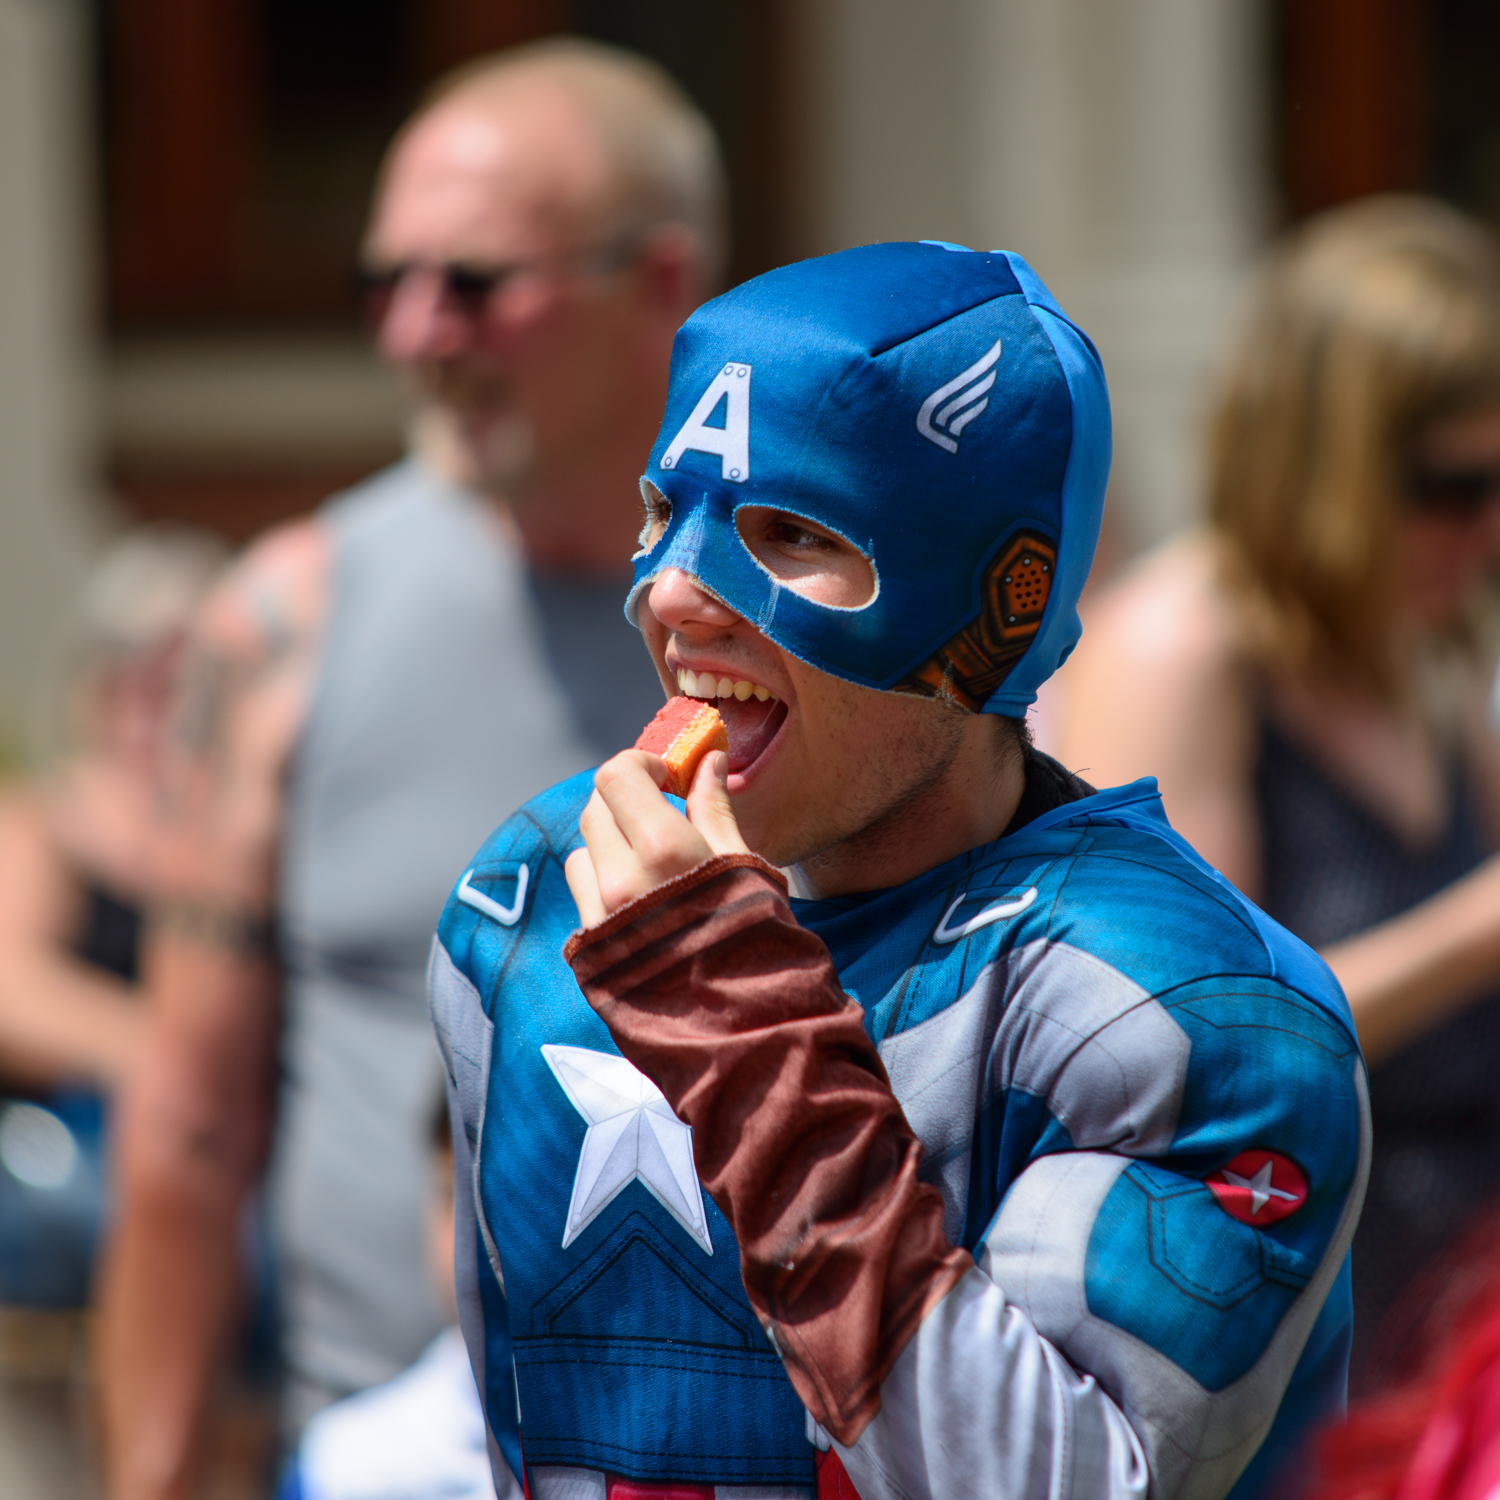 Captain America needs some refreshment